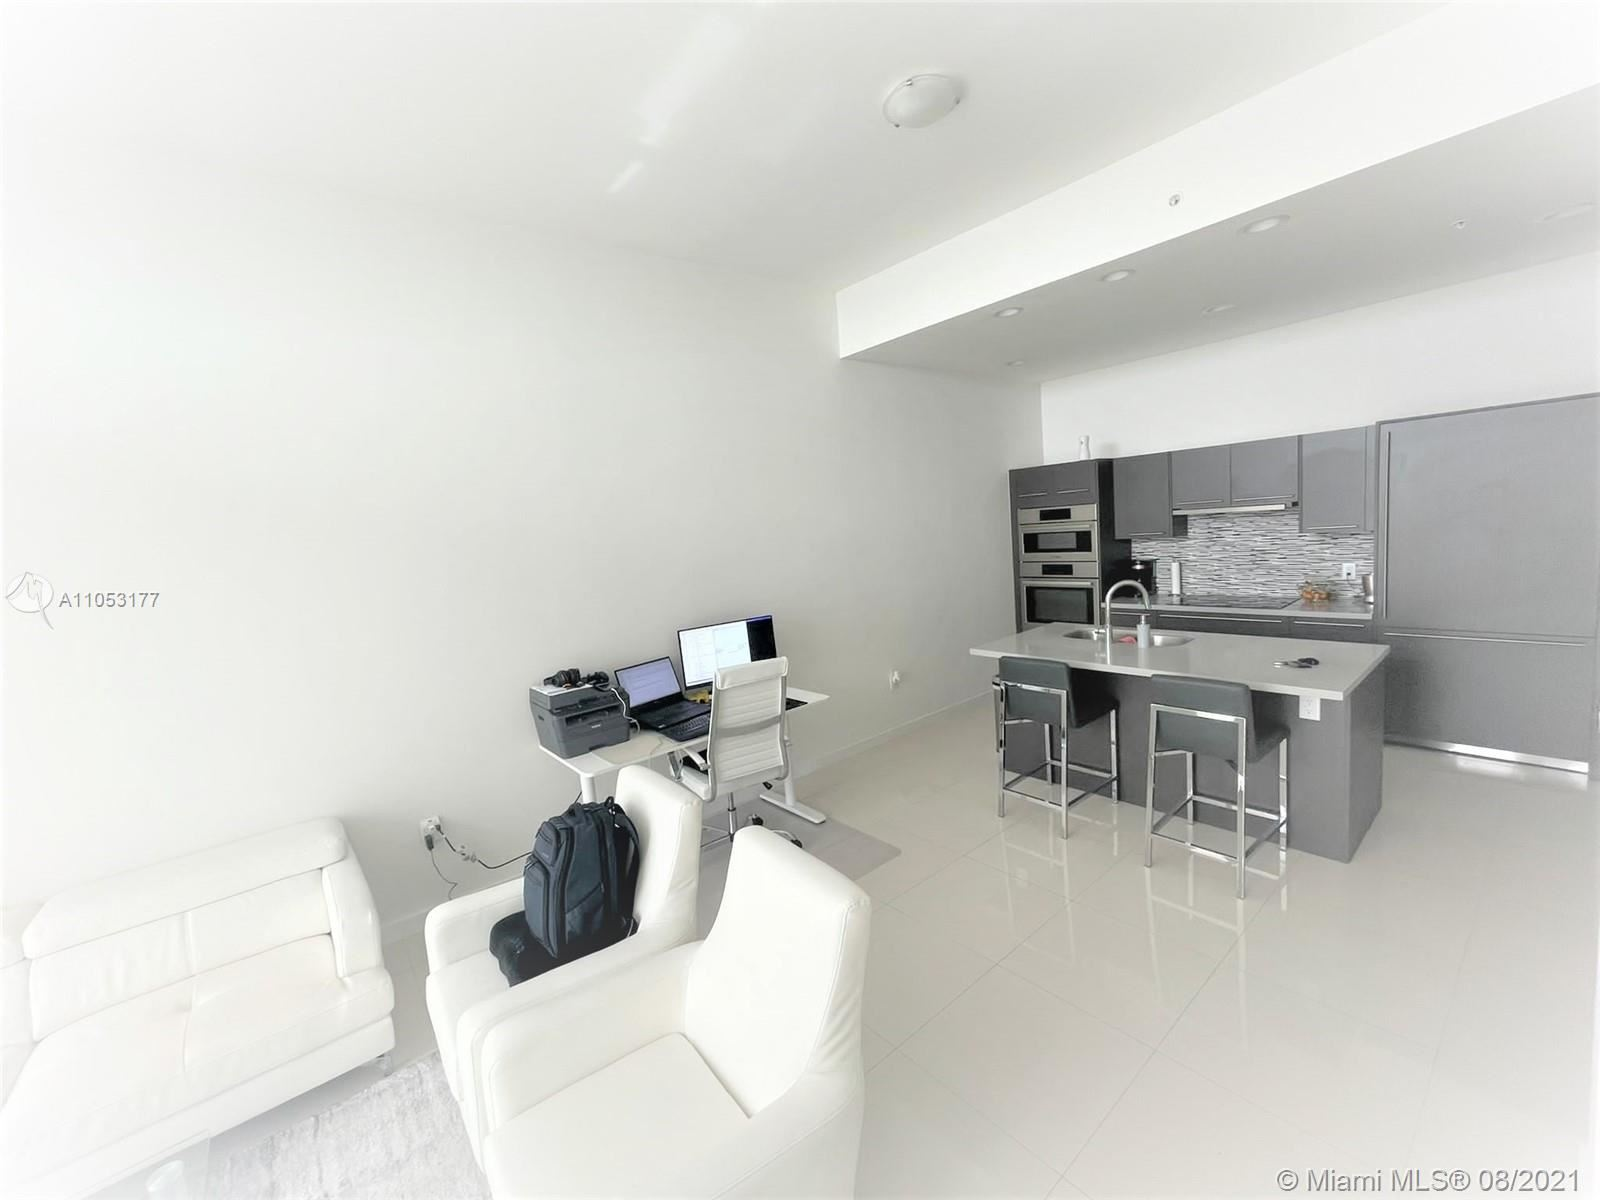 7661 NW 107th Ave #806, Doral, FL 33178 - #: A11053177